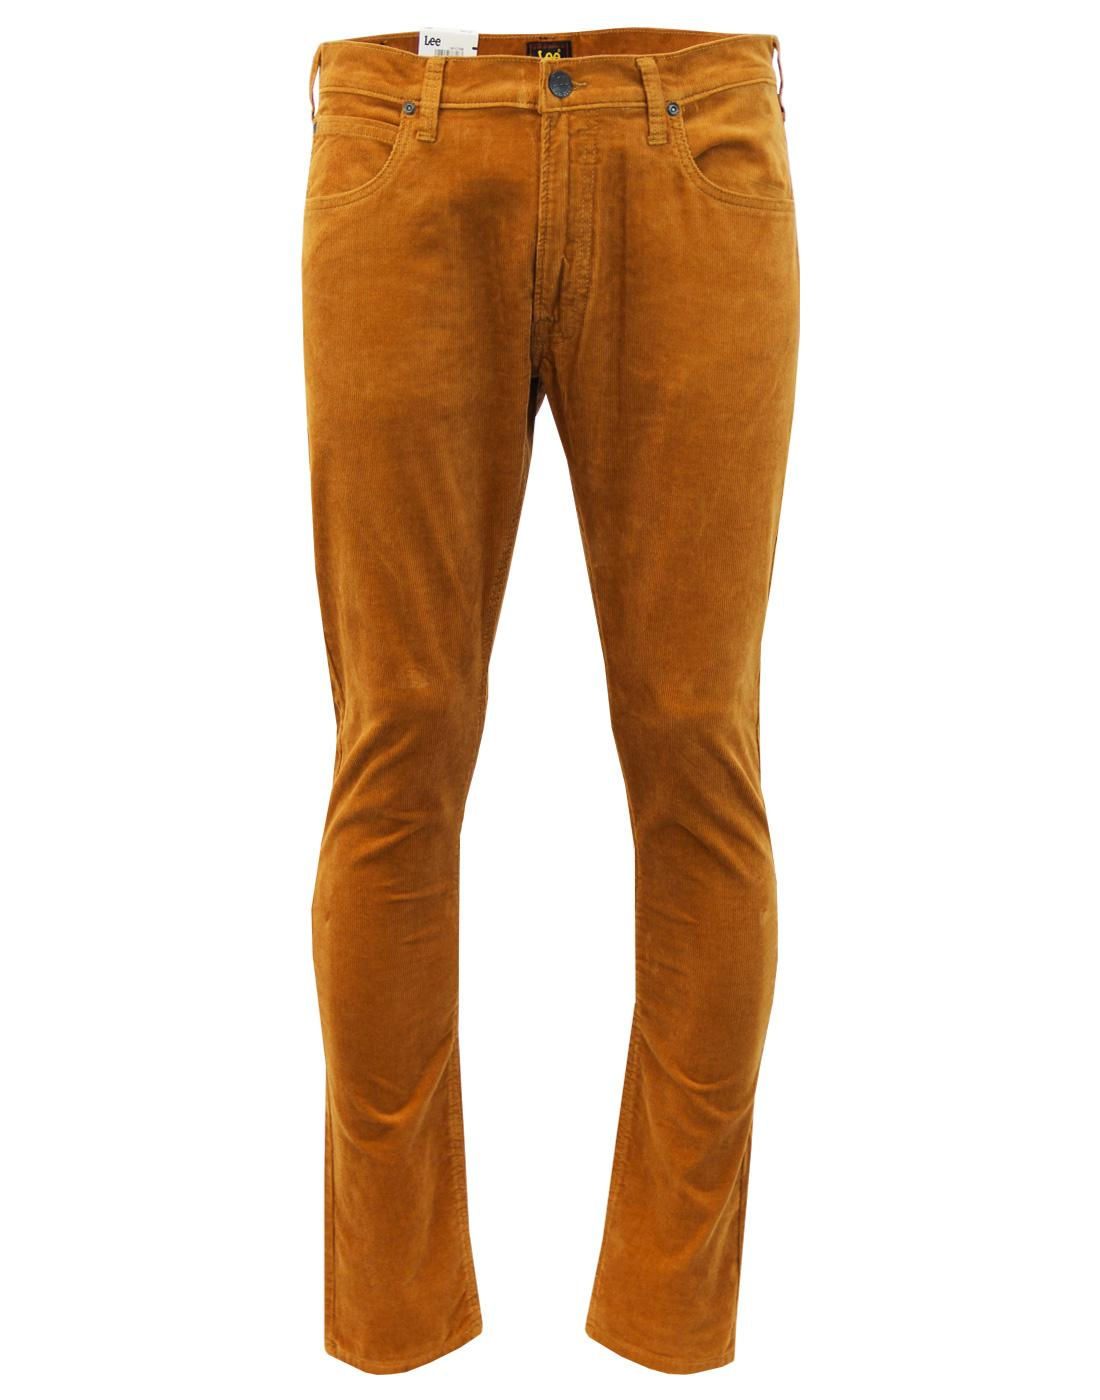 Luke LEE Retro Mod Slim Tapered Cord Jeans COGNAC